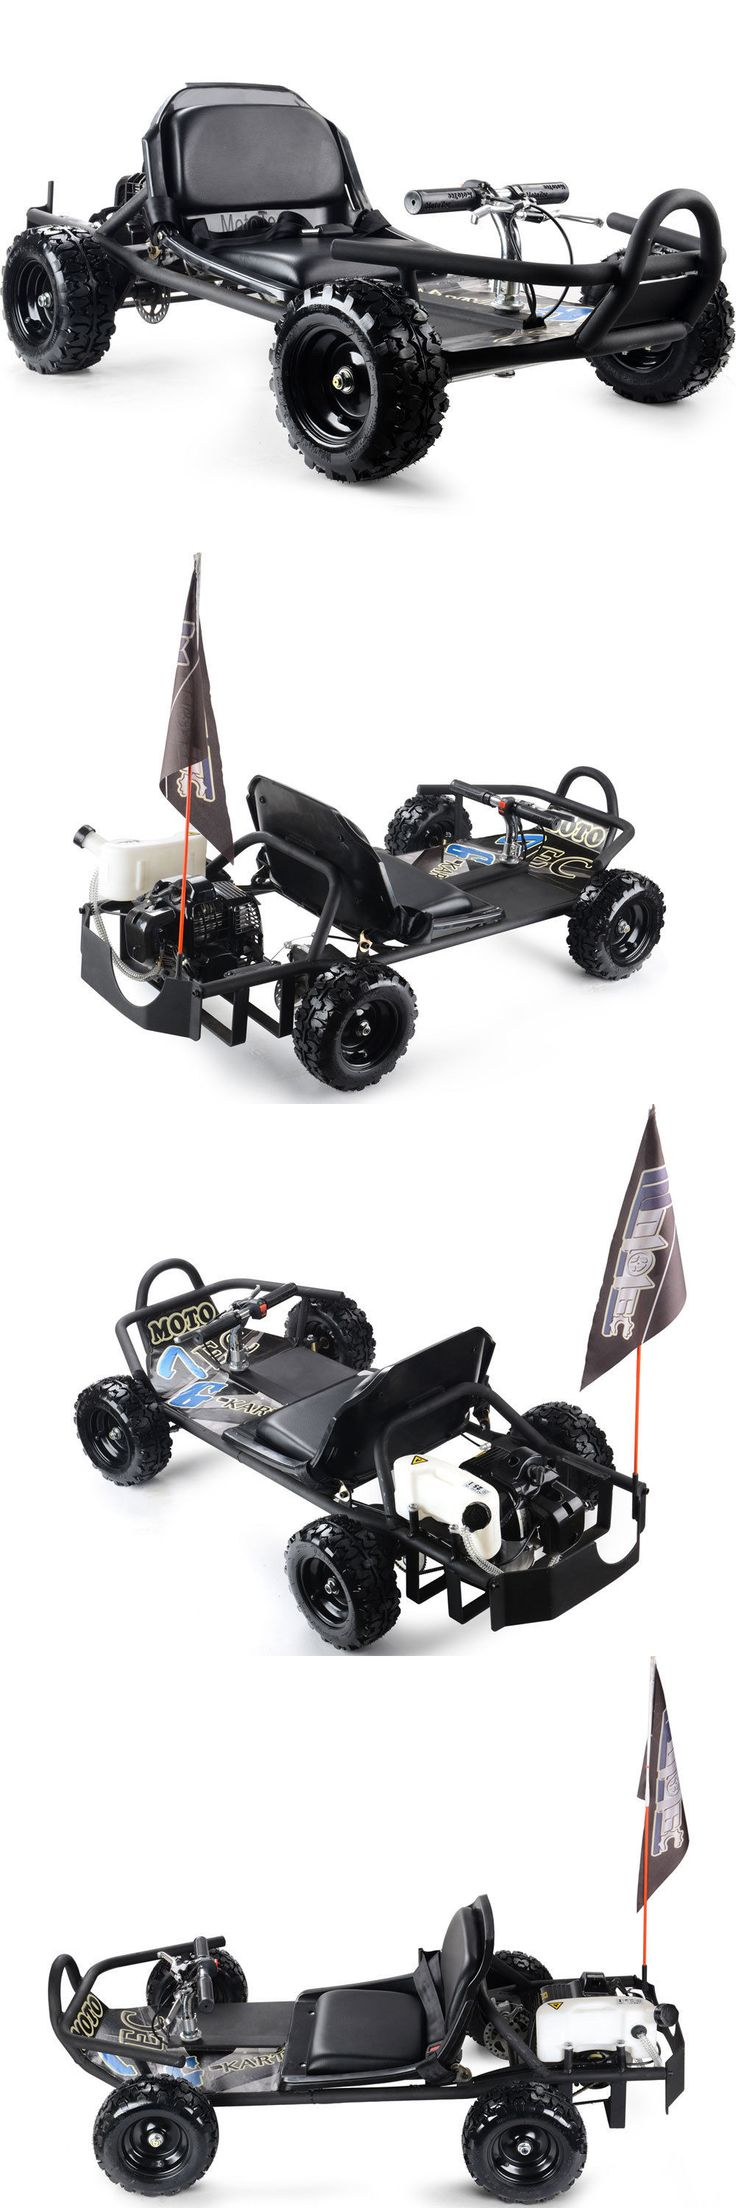 Complete Go-Karts and Frames 64656: 49Cc Gas Go Kart 2 Cycle Mototec Sandman Mt-Gk-10_Black 8In Knobby Tires -> BUY IT NOW ONLY: $629 on eBay!